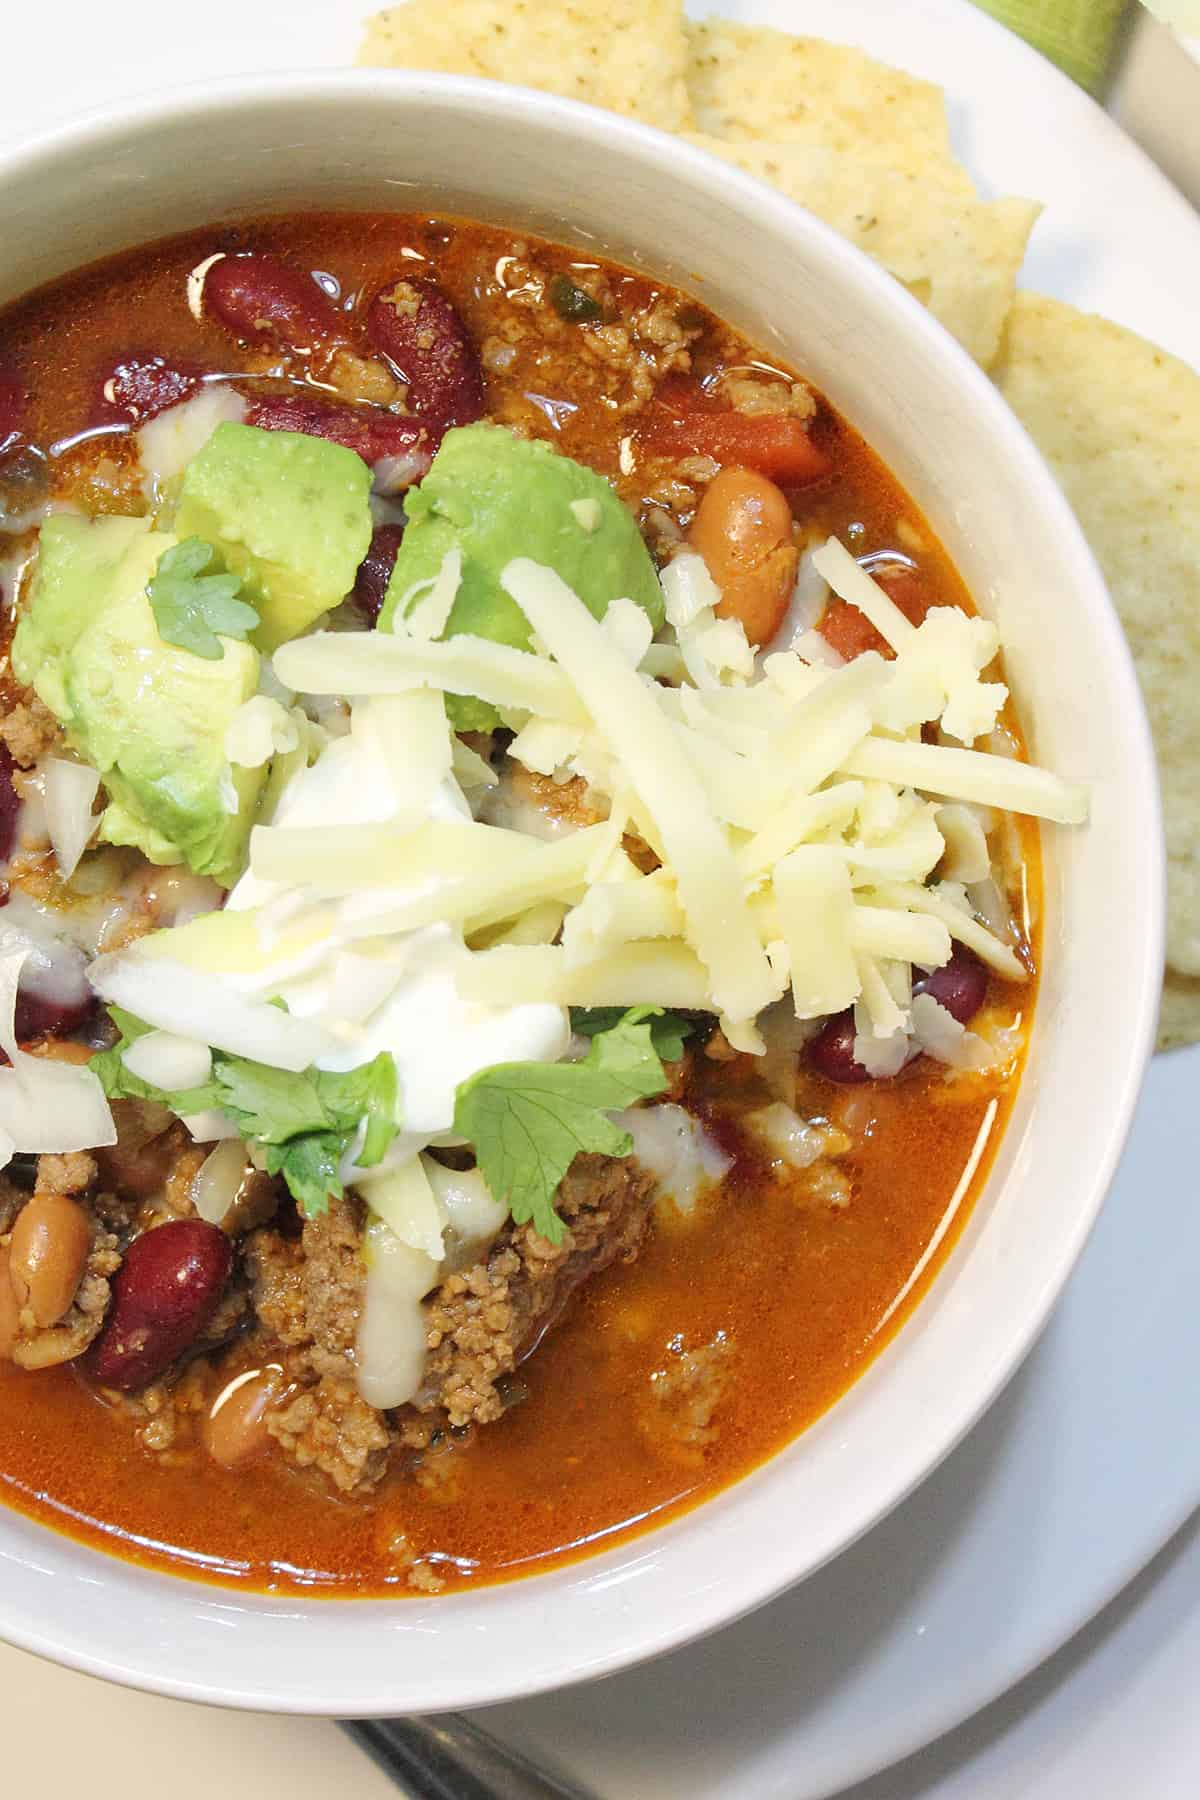 Overhead of partial bowl of slow cooker taco chili topped with cheese, avocado and sour cream.